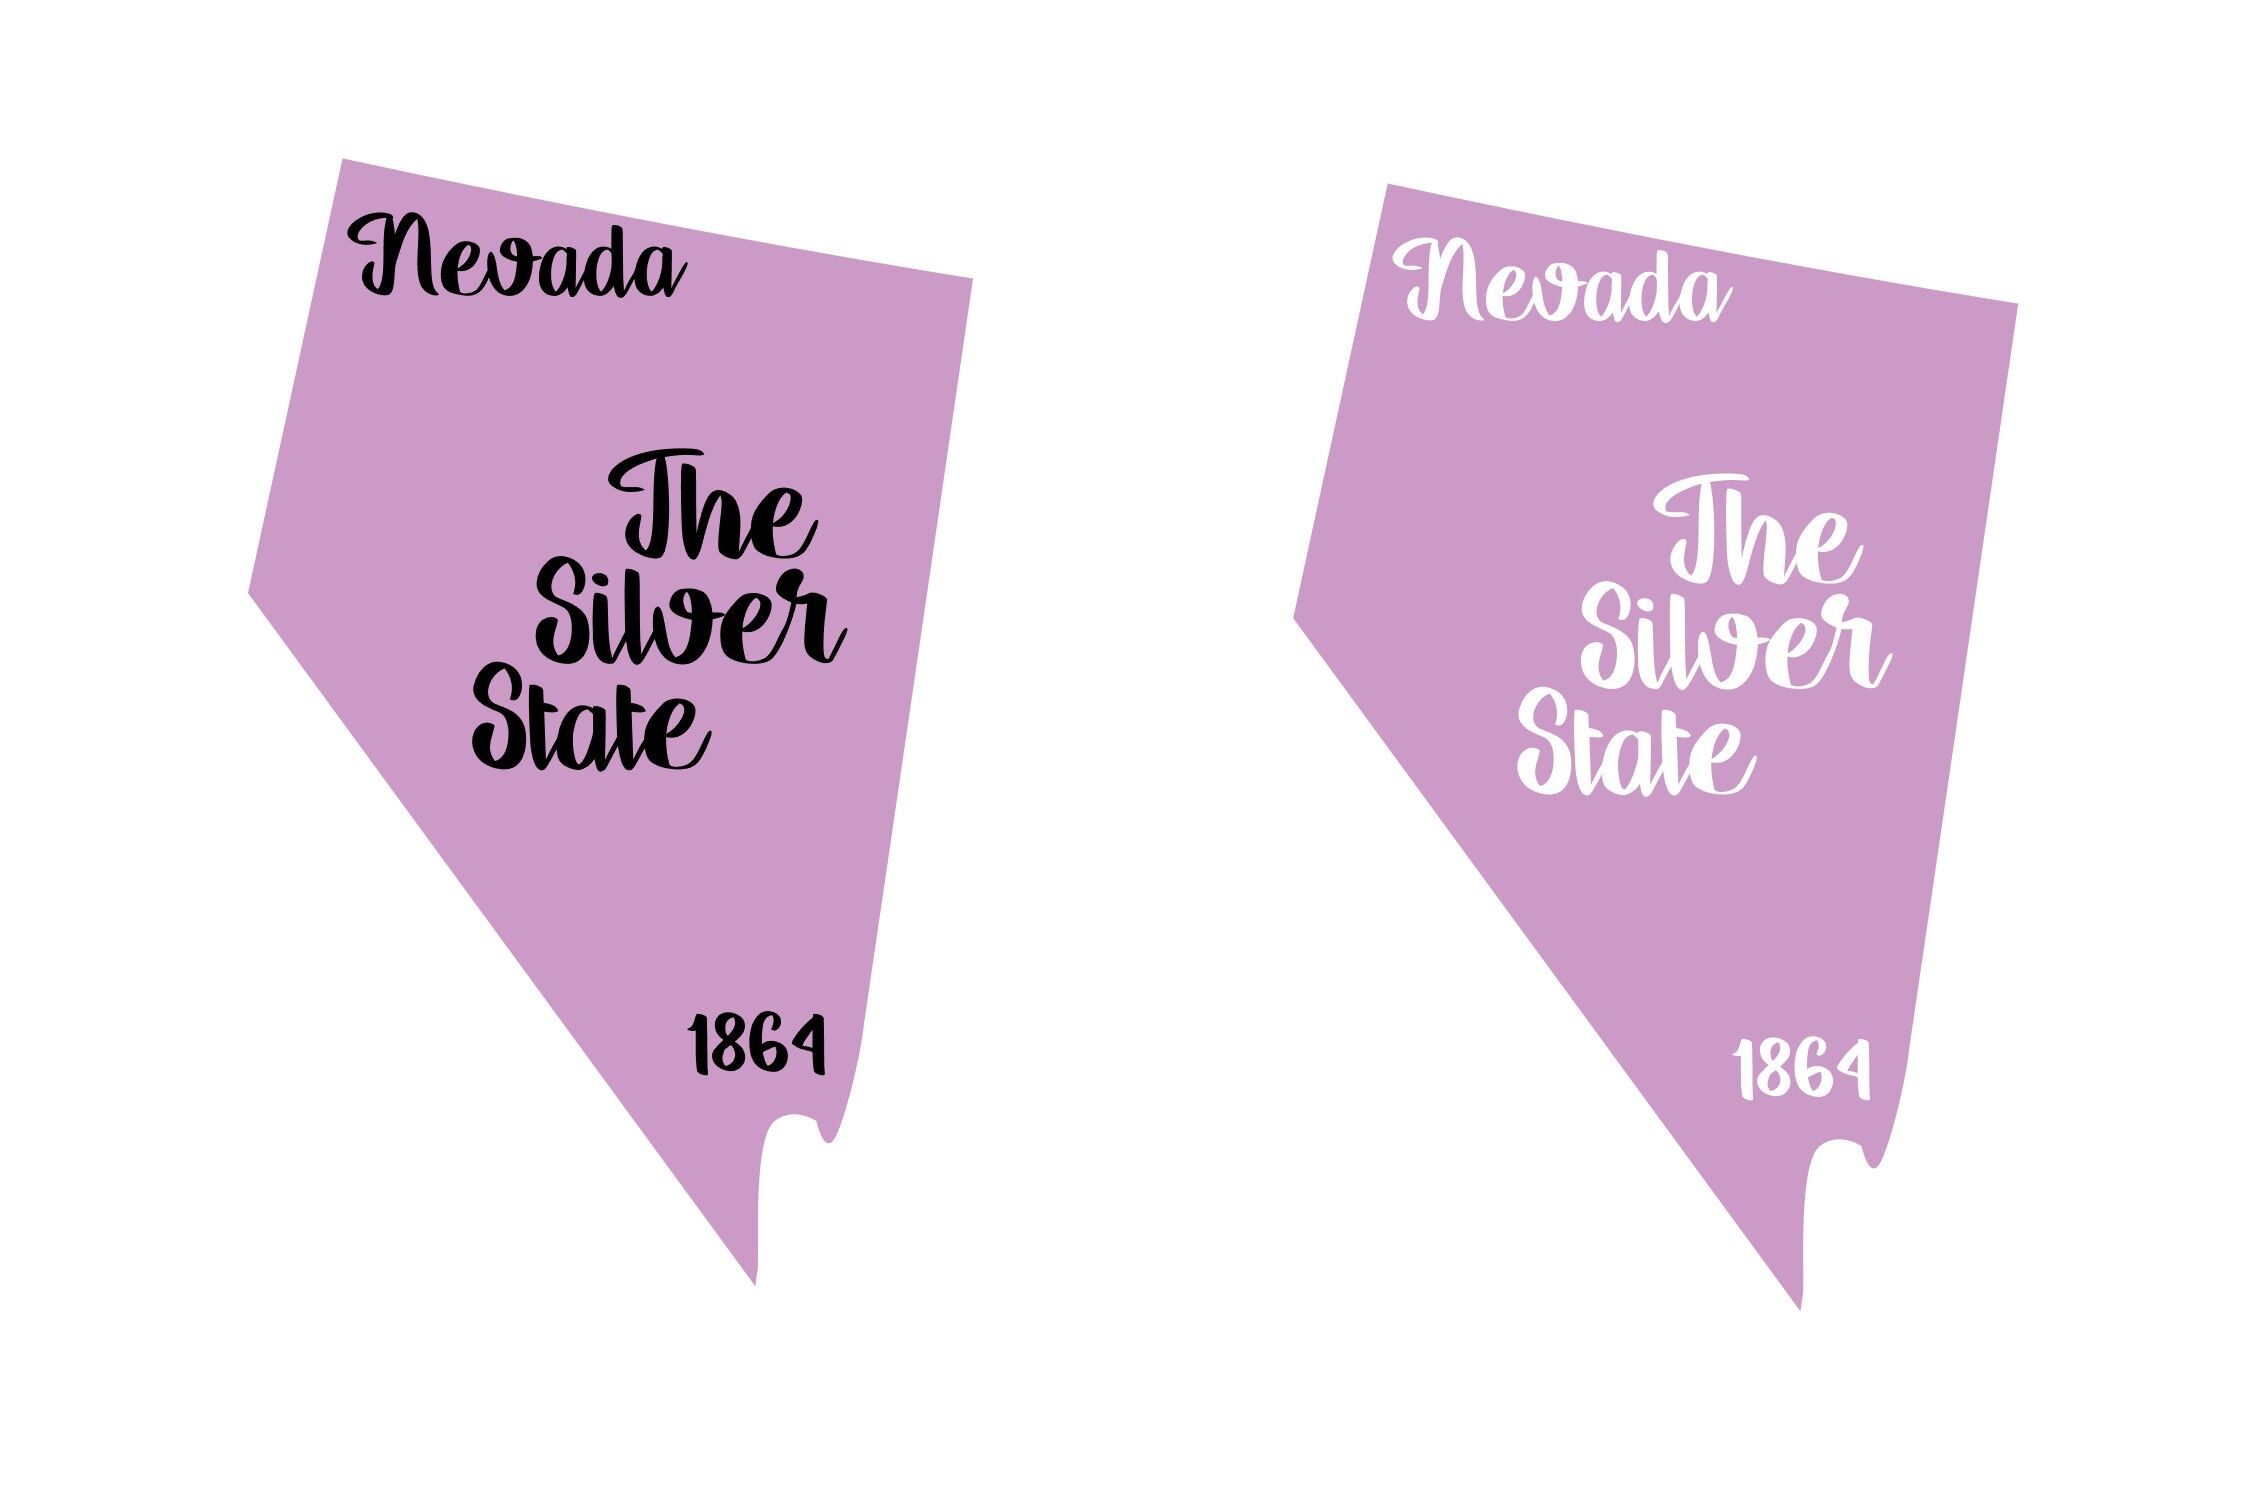 Nevada State Nickname Est Year 2 Files Svg Png Eps By Studio 26 Design Co Thehungryjpeg Com